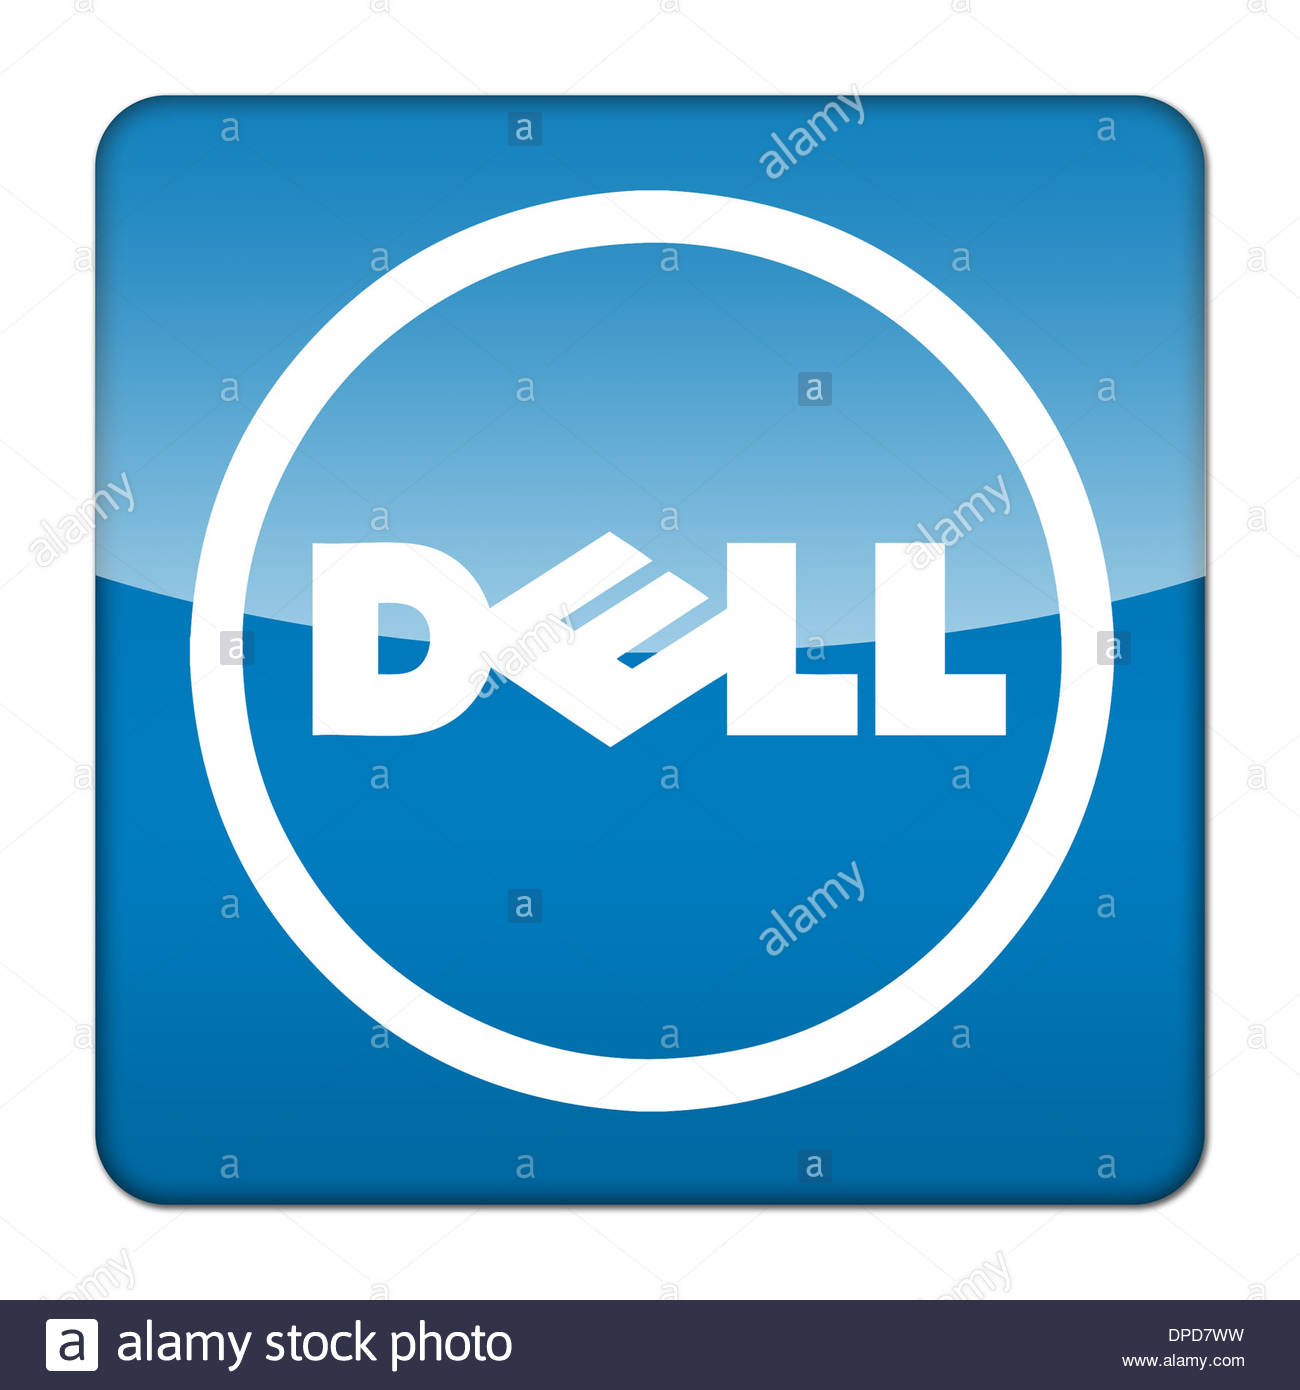 Dell computers logo icon app flag button stock photo 65445125 alamy dell computers logo icon app flag button biocorpaavc Images